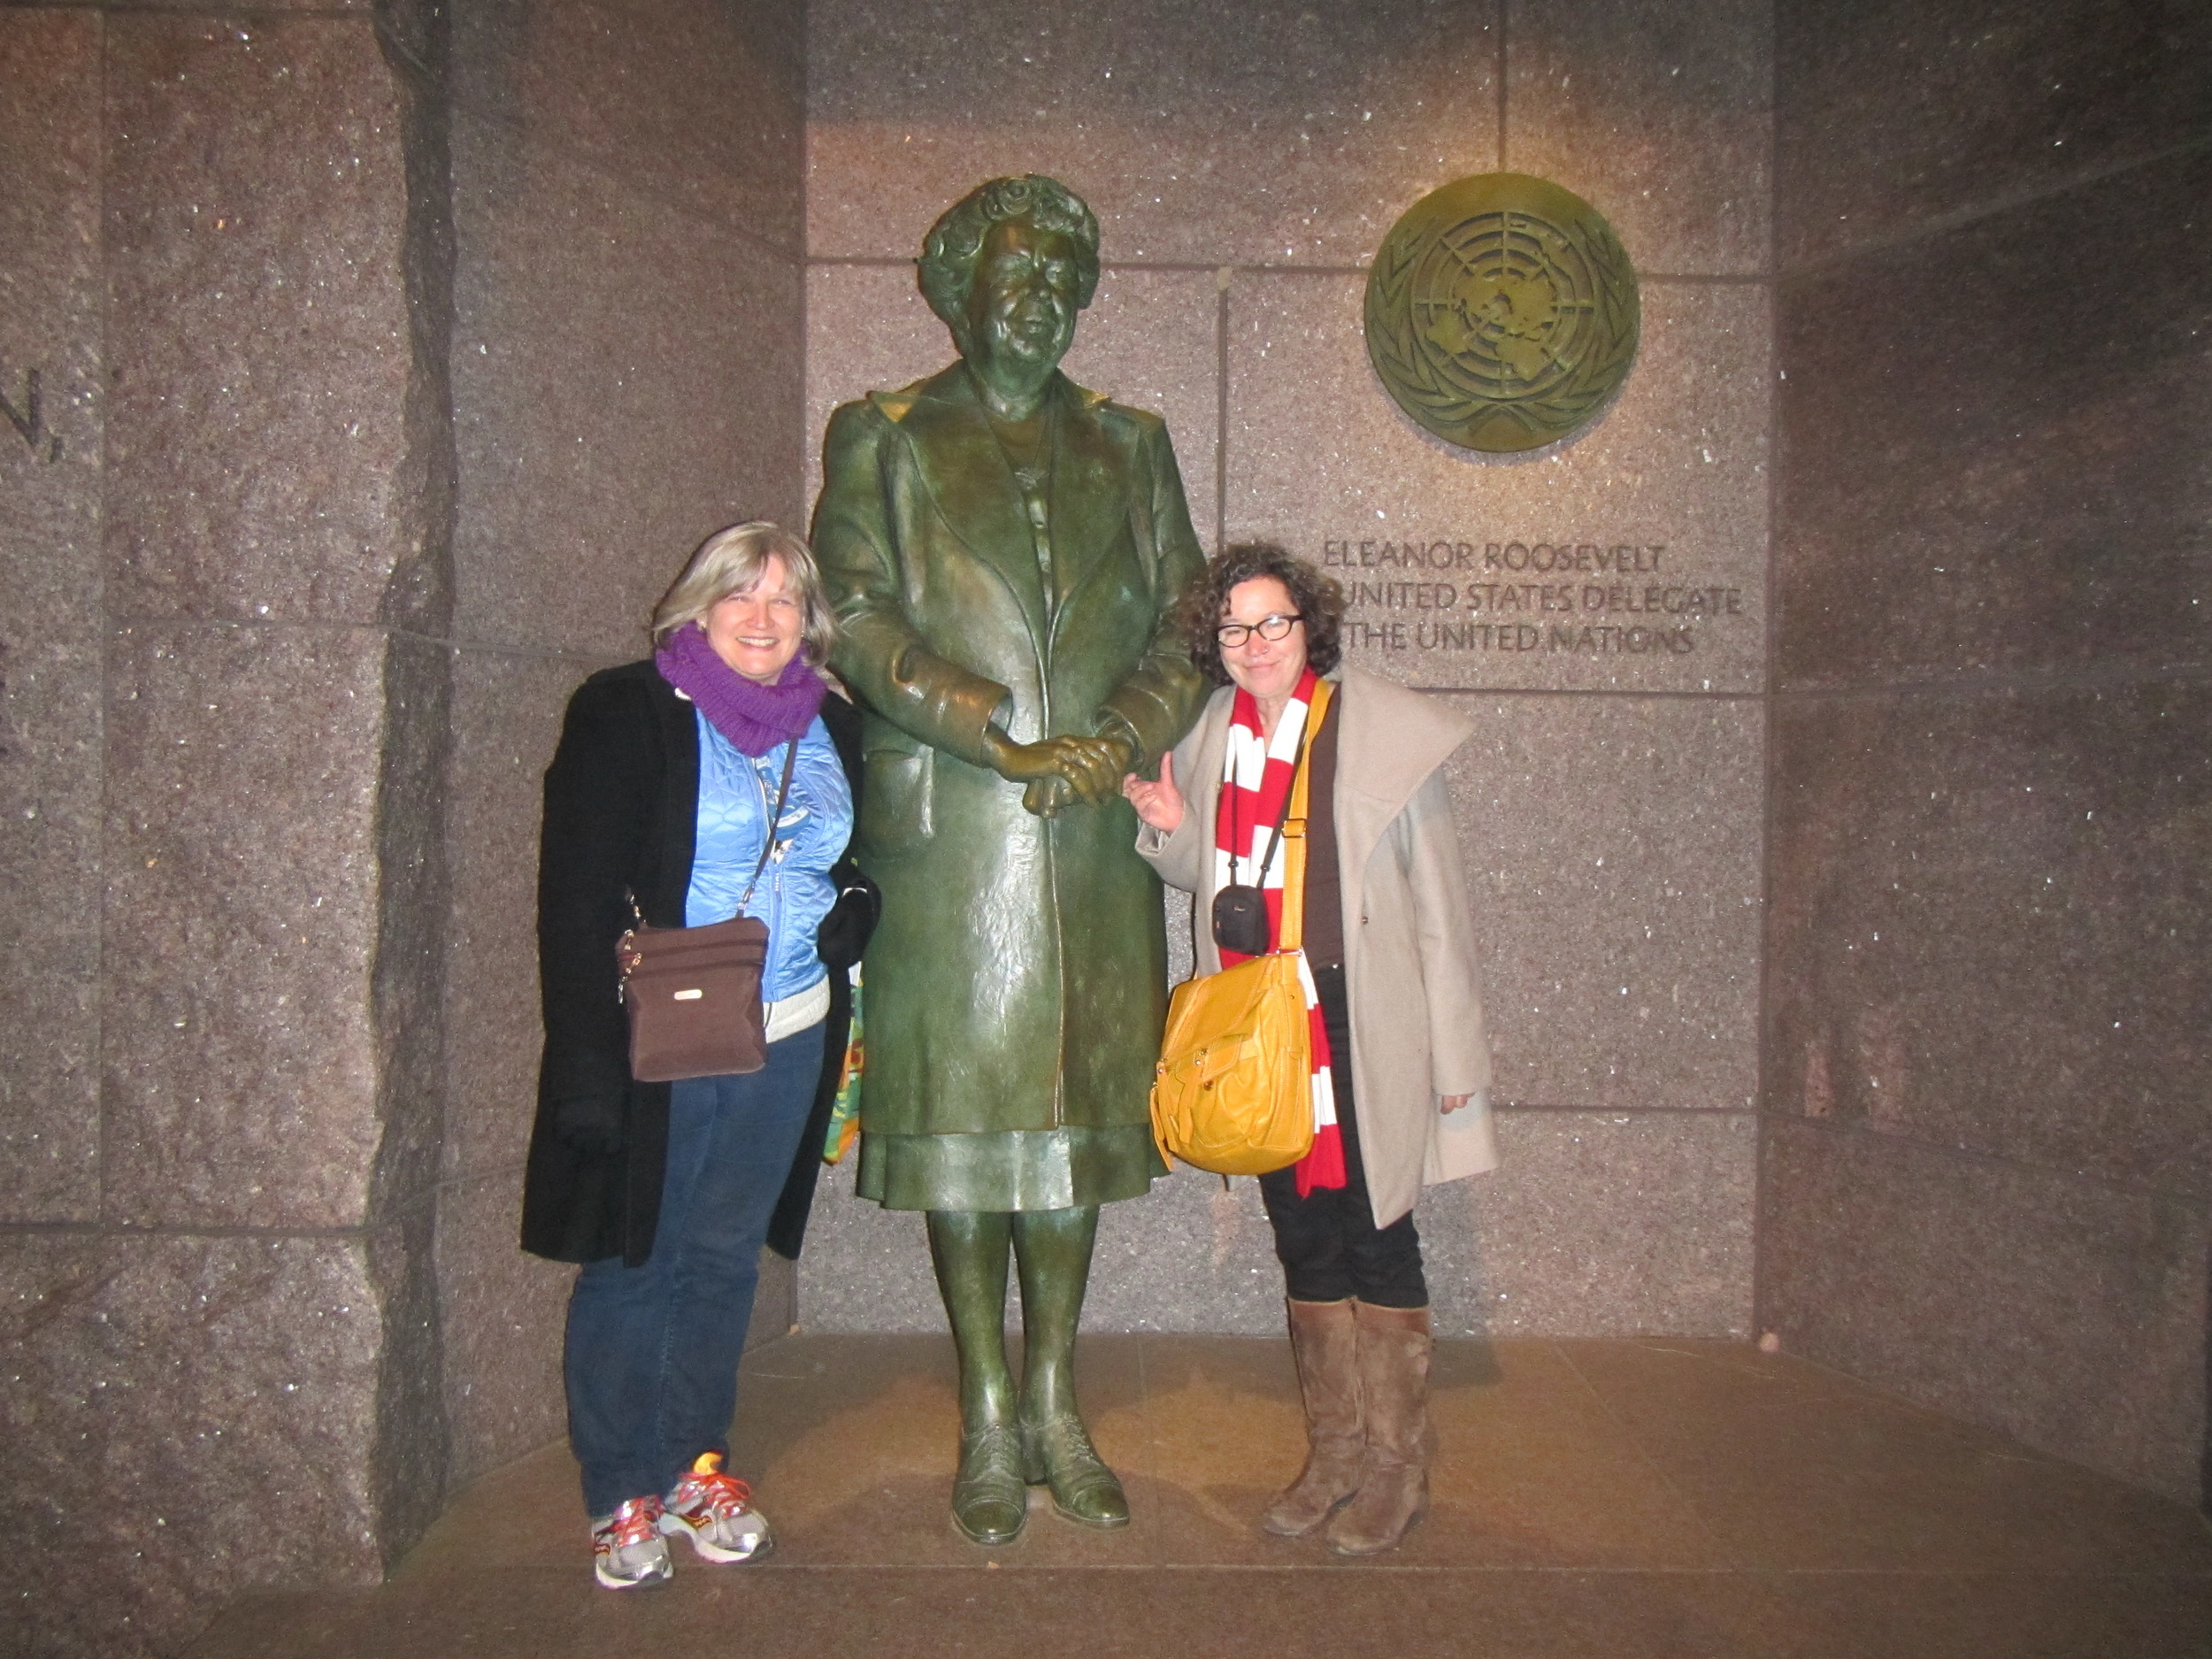 Standing in the shadow of great first lady Eleanor Roosevelt